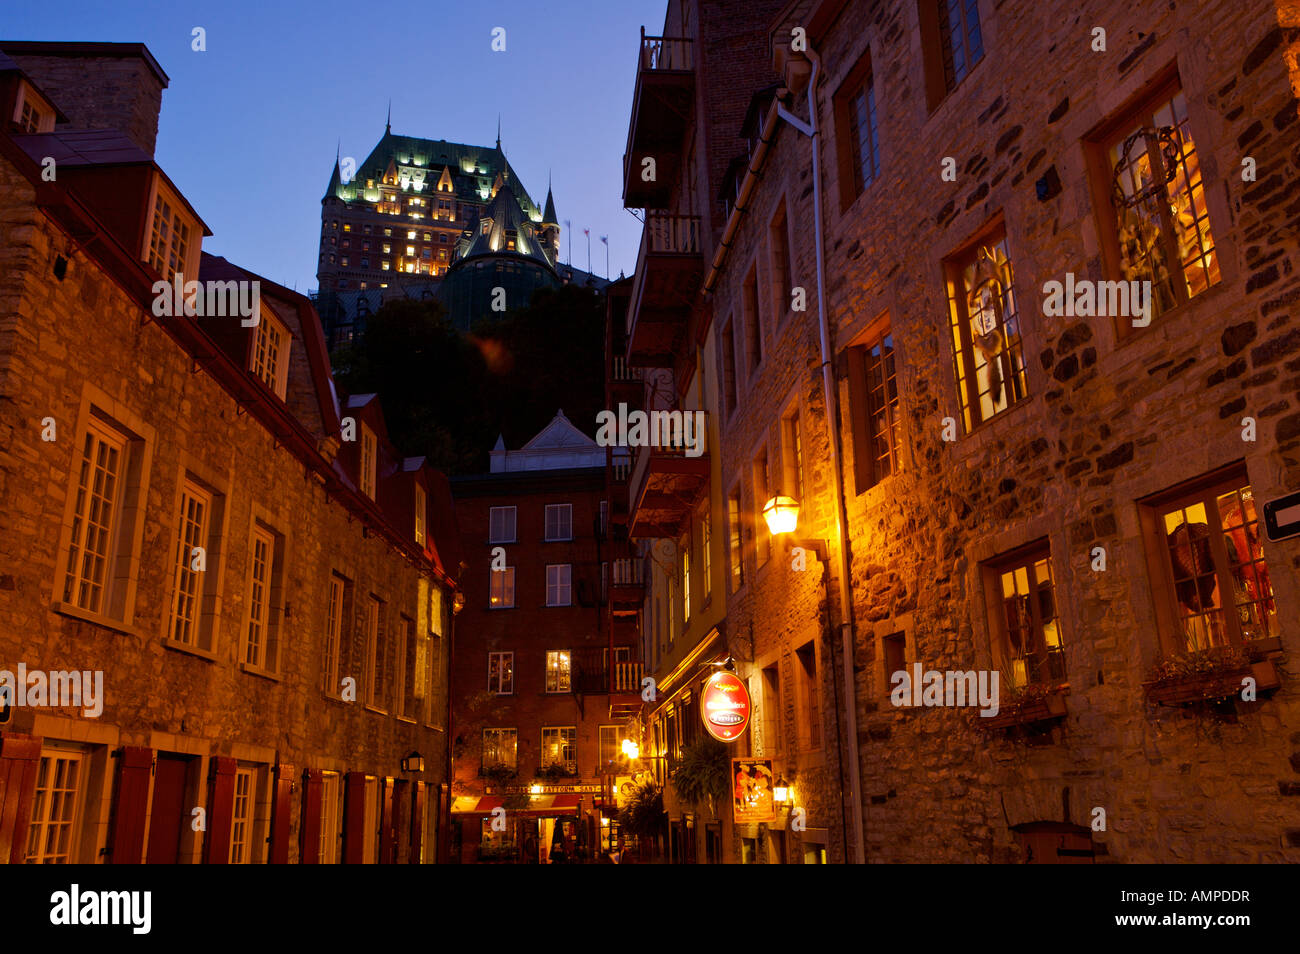 Fairmont Le Chateau Frontenac seen at blue hour from rue Notre-Dame in Old Quebec,Quebec, Canada. UNESCO World Heritage - Stock Image